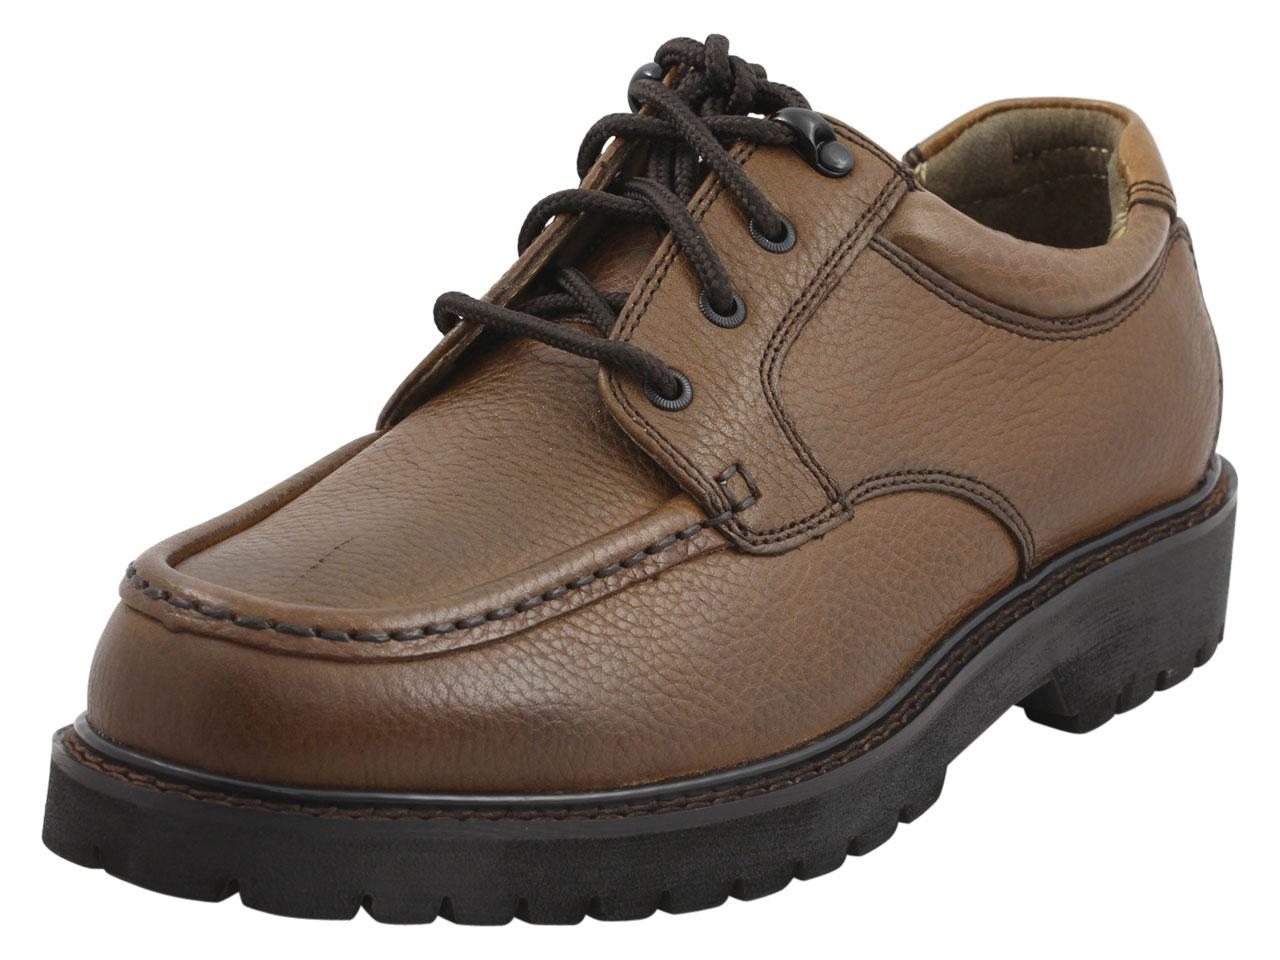 Image of Dockers Men's Glacier Memory Foam Oxfords Shoes - Brown - 13 D(M) US